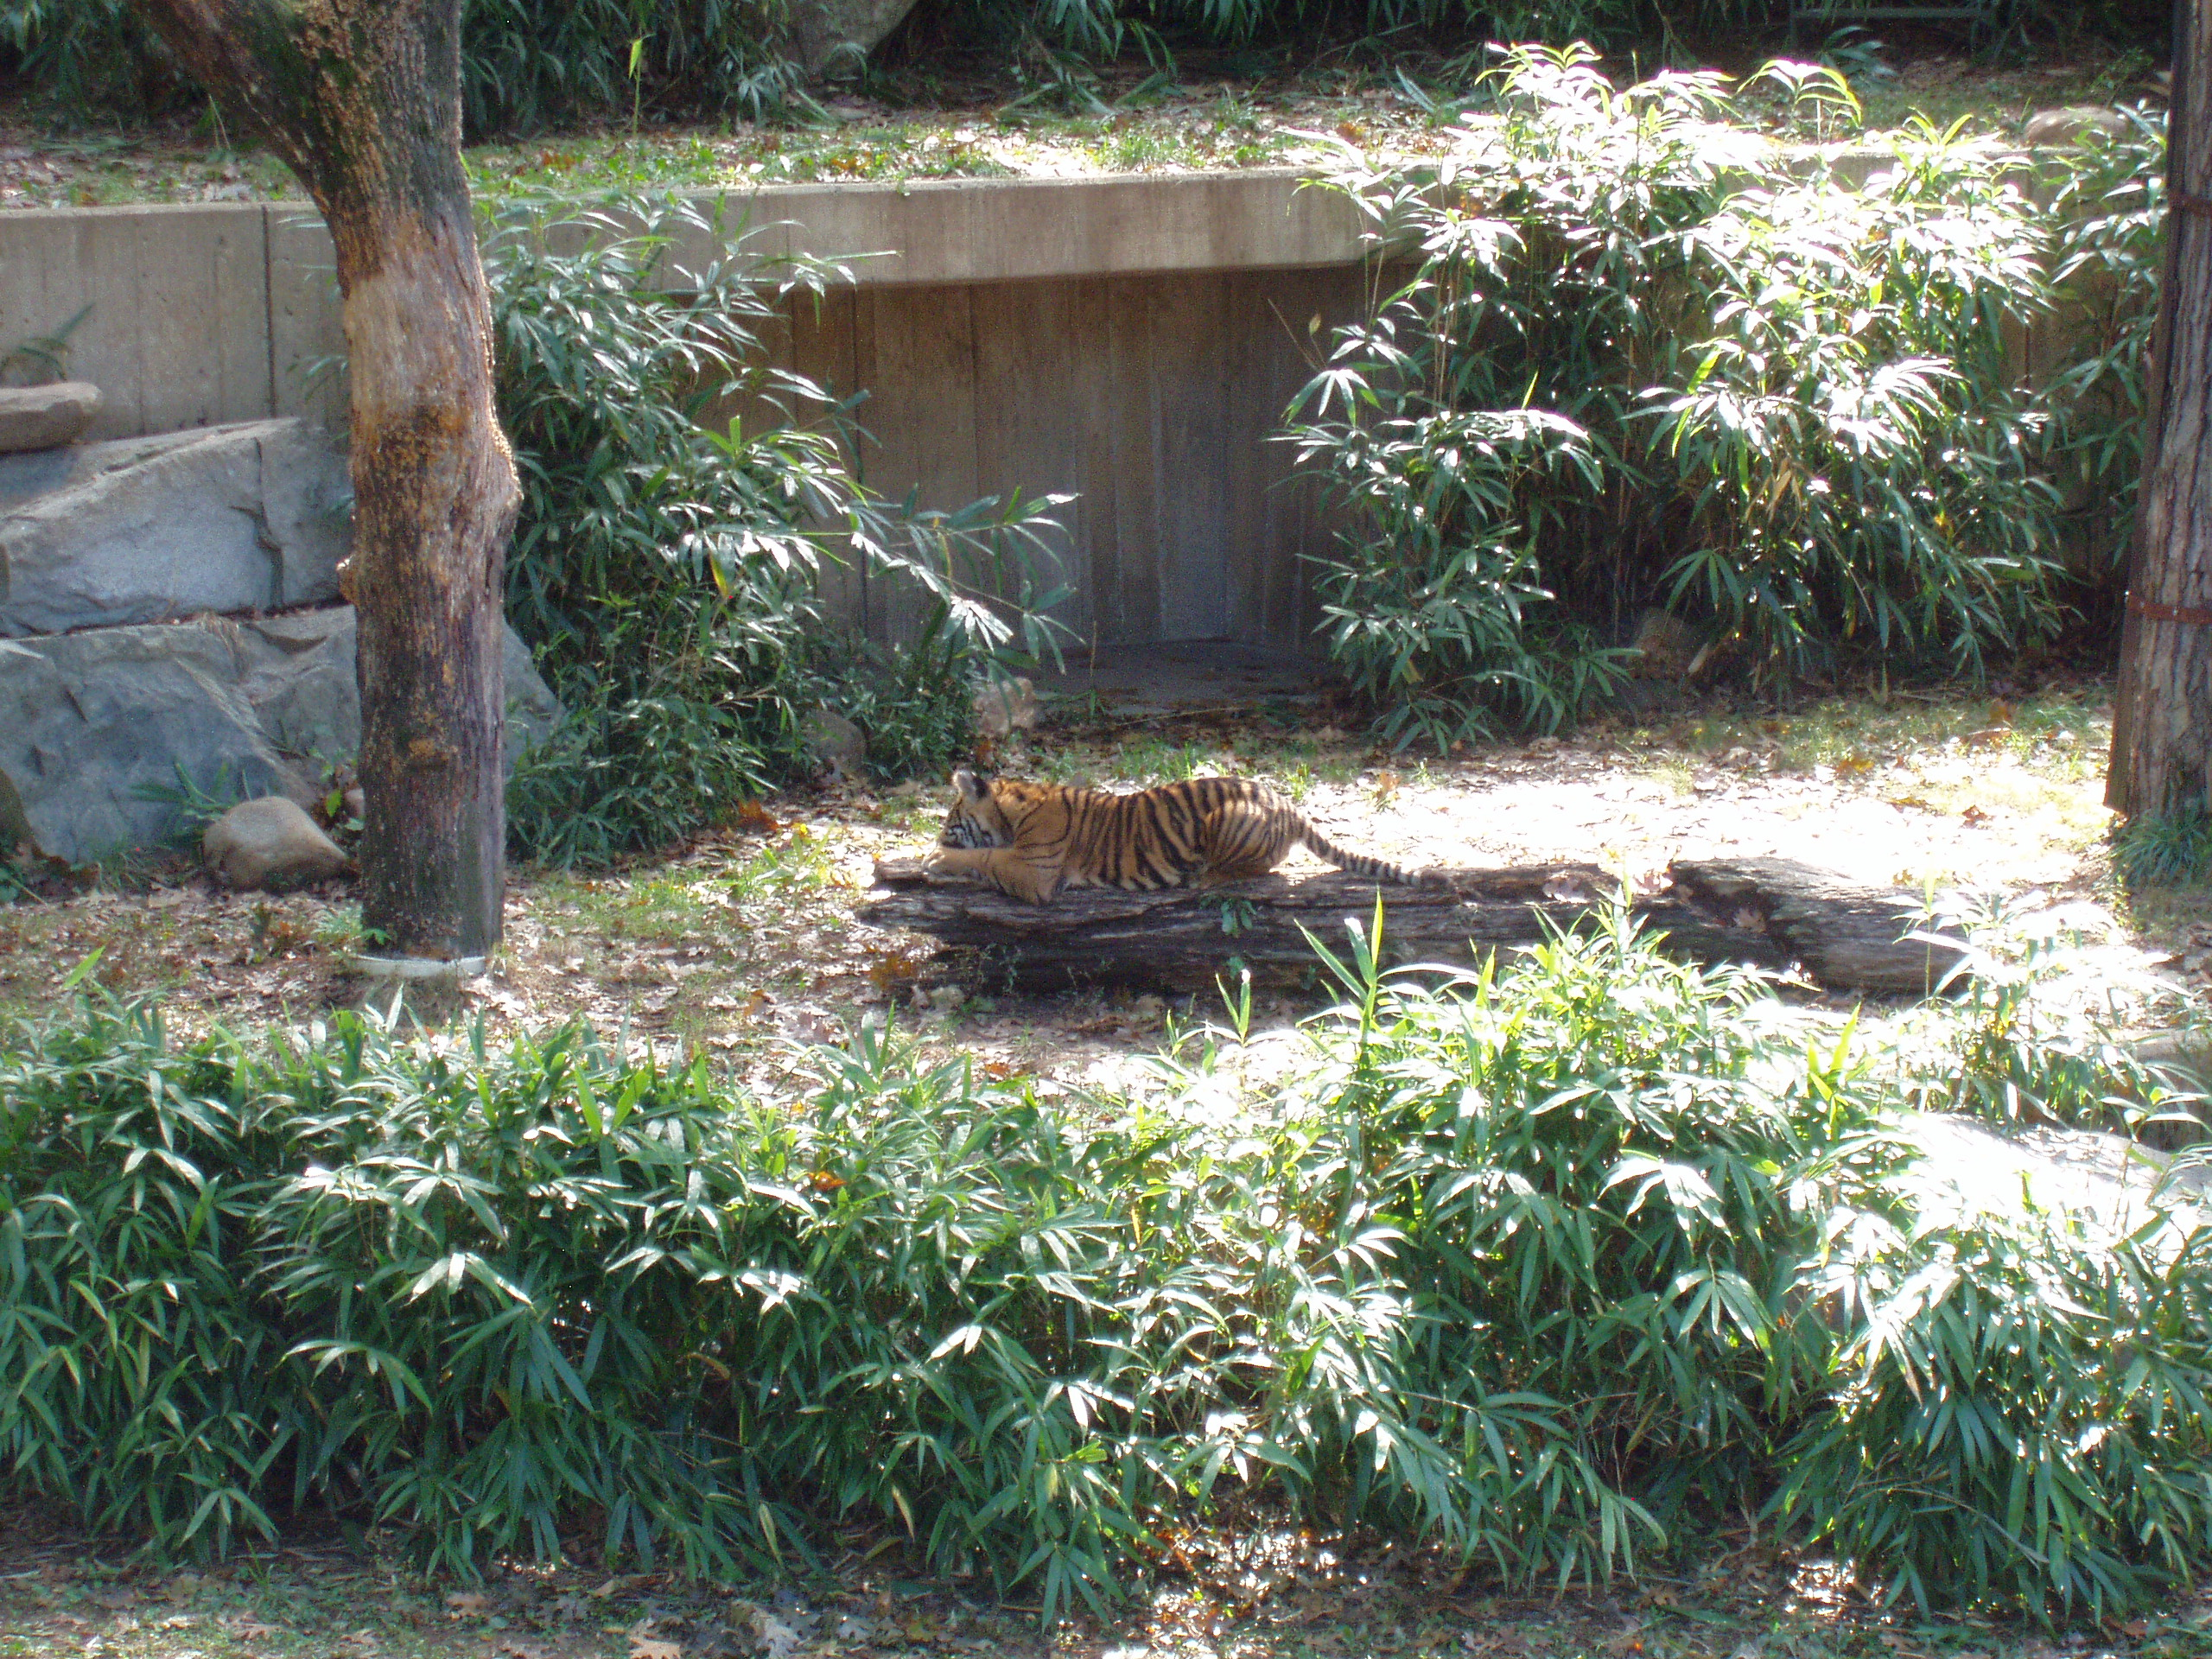 The little tiger is really getting stuck into that log